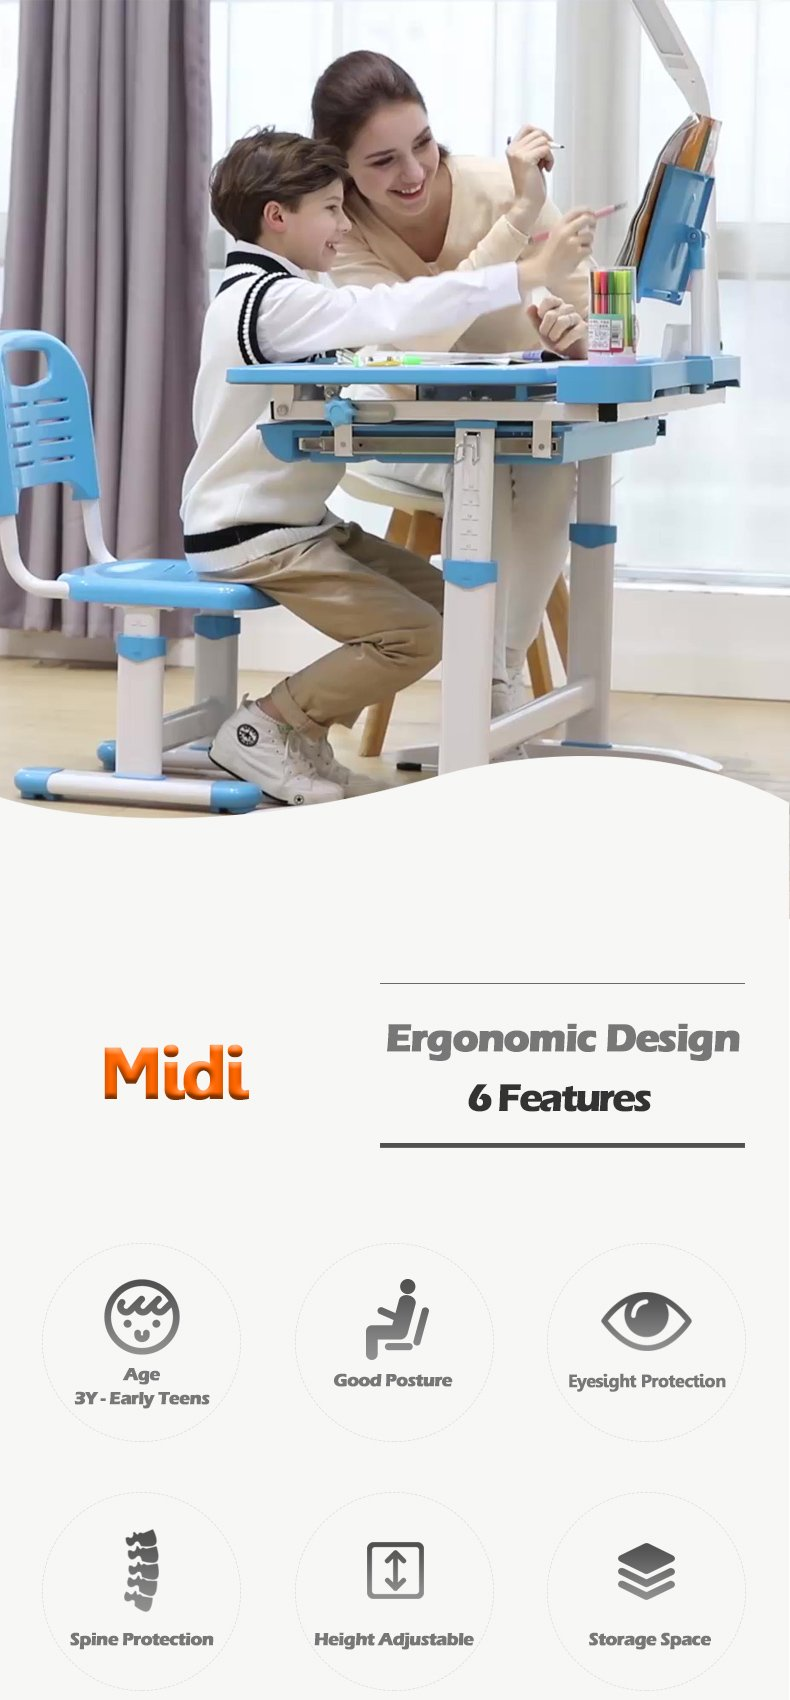 Best-Desk-Midi-2018-Model-Product-Descriptions-01